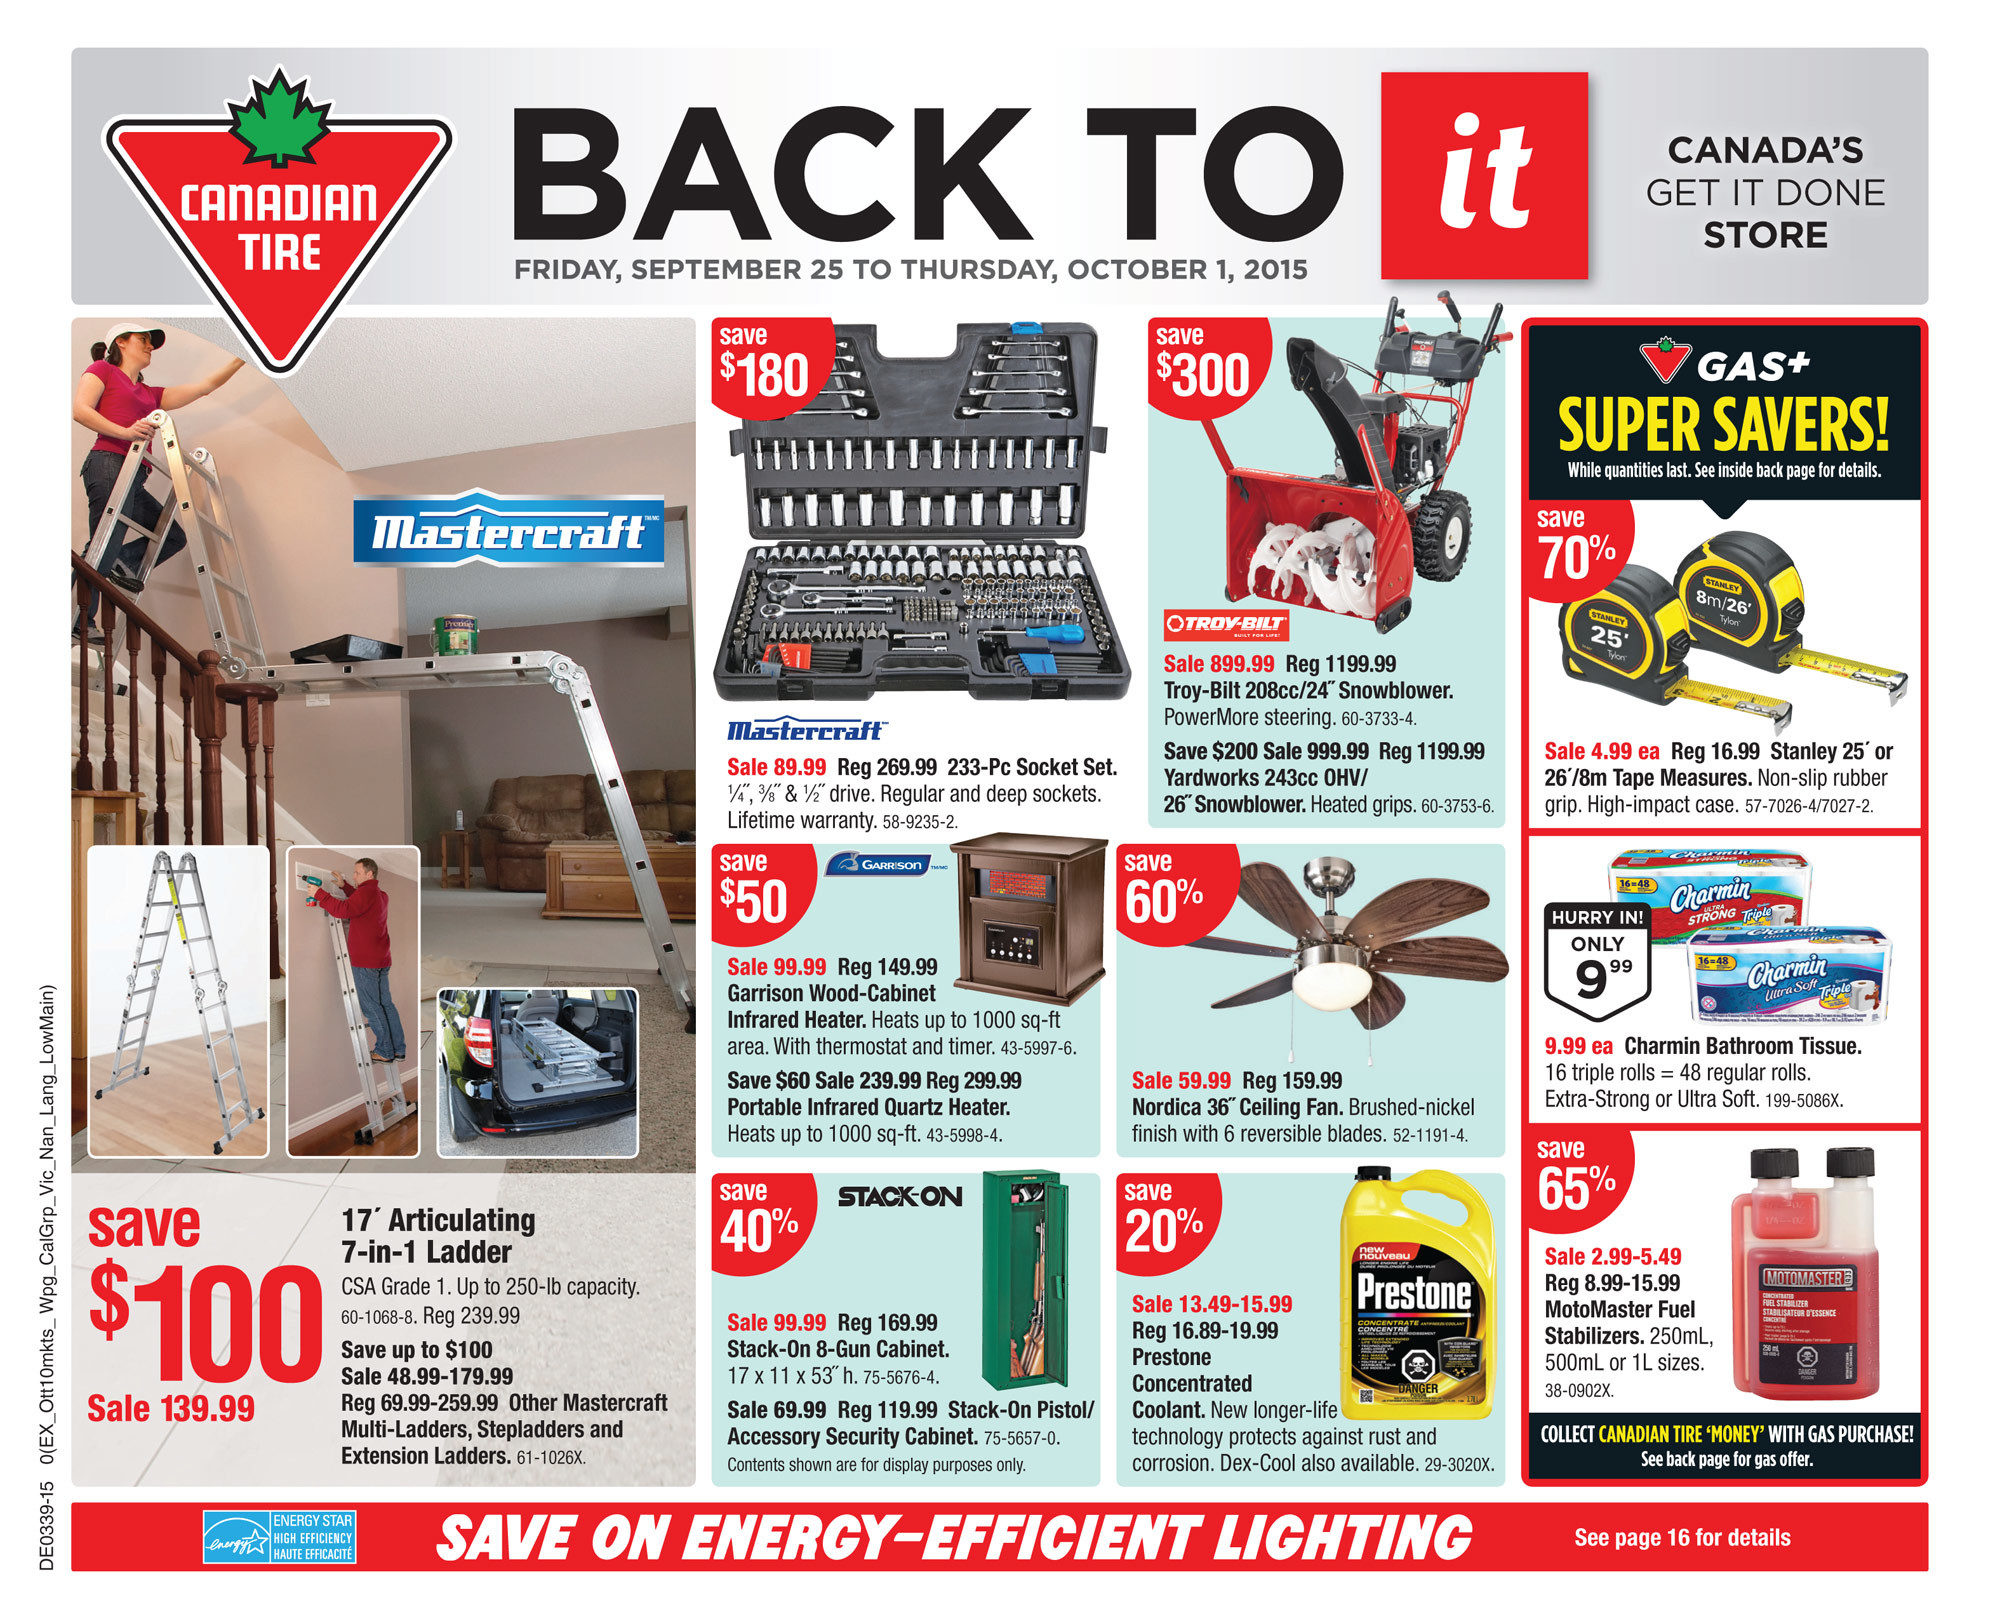 Canadian Tire Weekly Flyer - Weekly - Back To It - Sep 25 – Oct 1